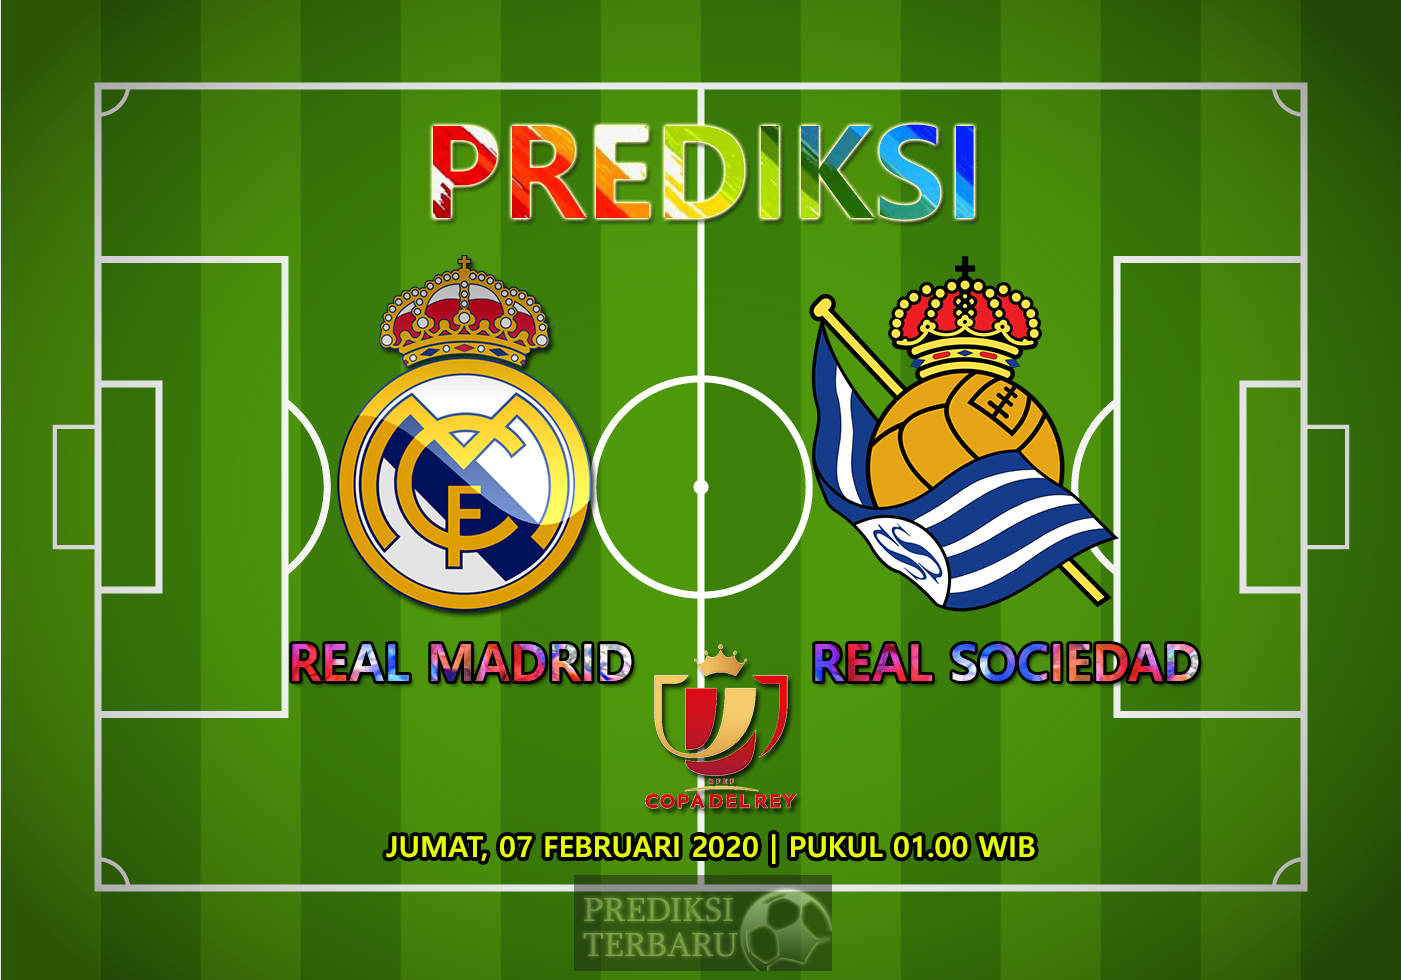 Prediksi Real Madrid Vs Real Sociedad 07 Februari